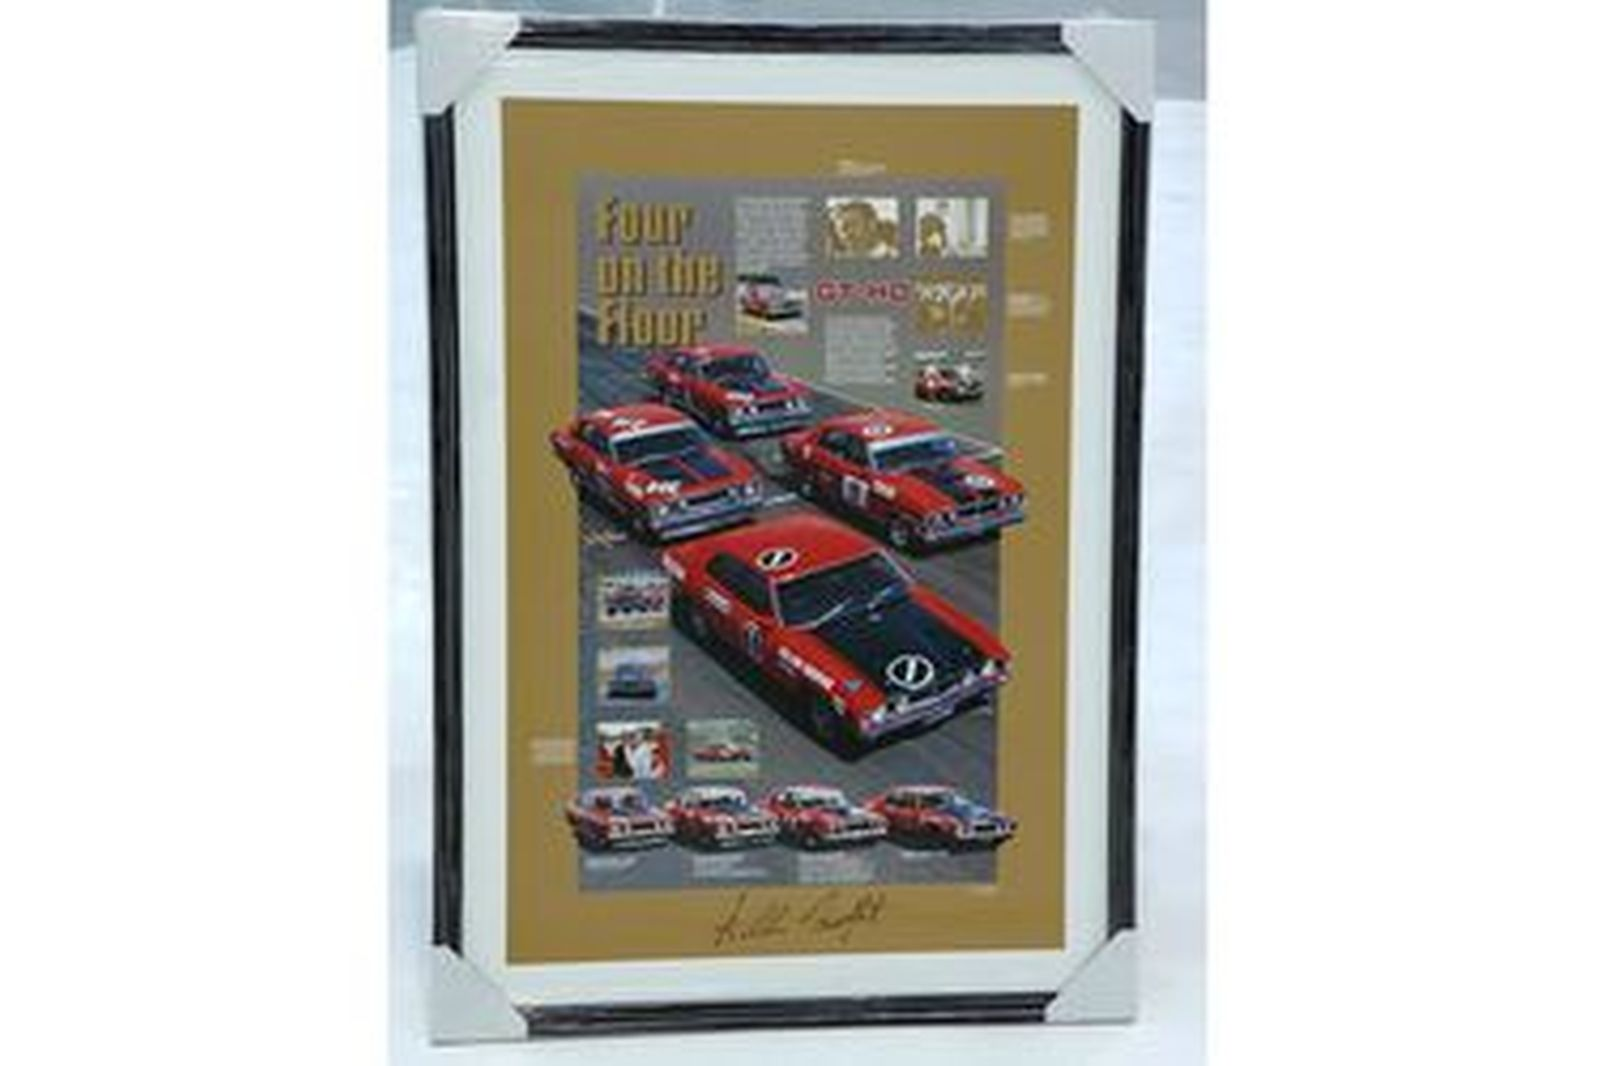 Framed Signed Print - Tribute to Ford Falcon GT-HO Phase 1,2,3,4 signed By Allan Moffat